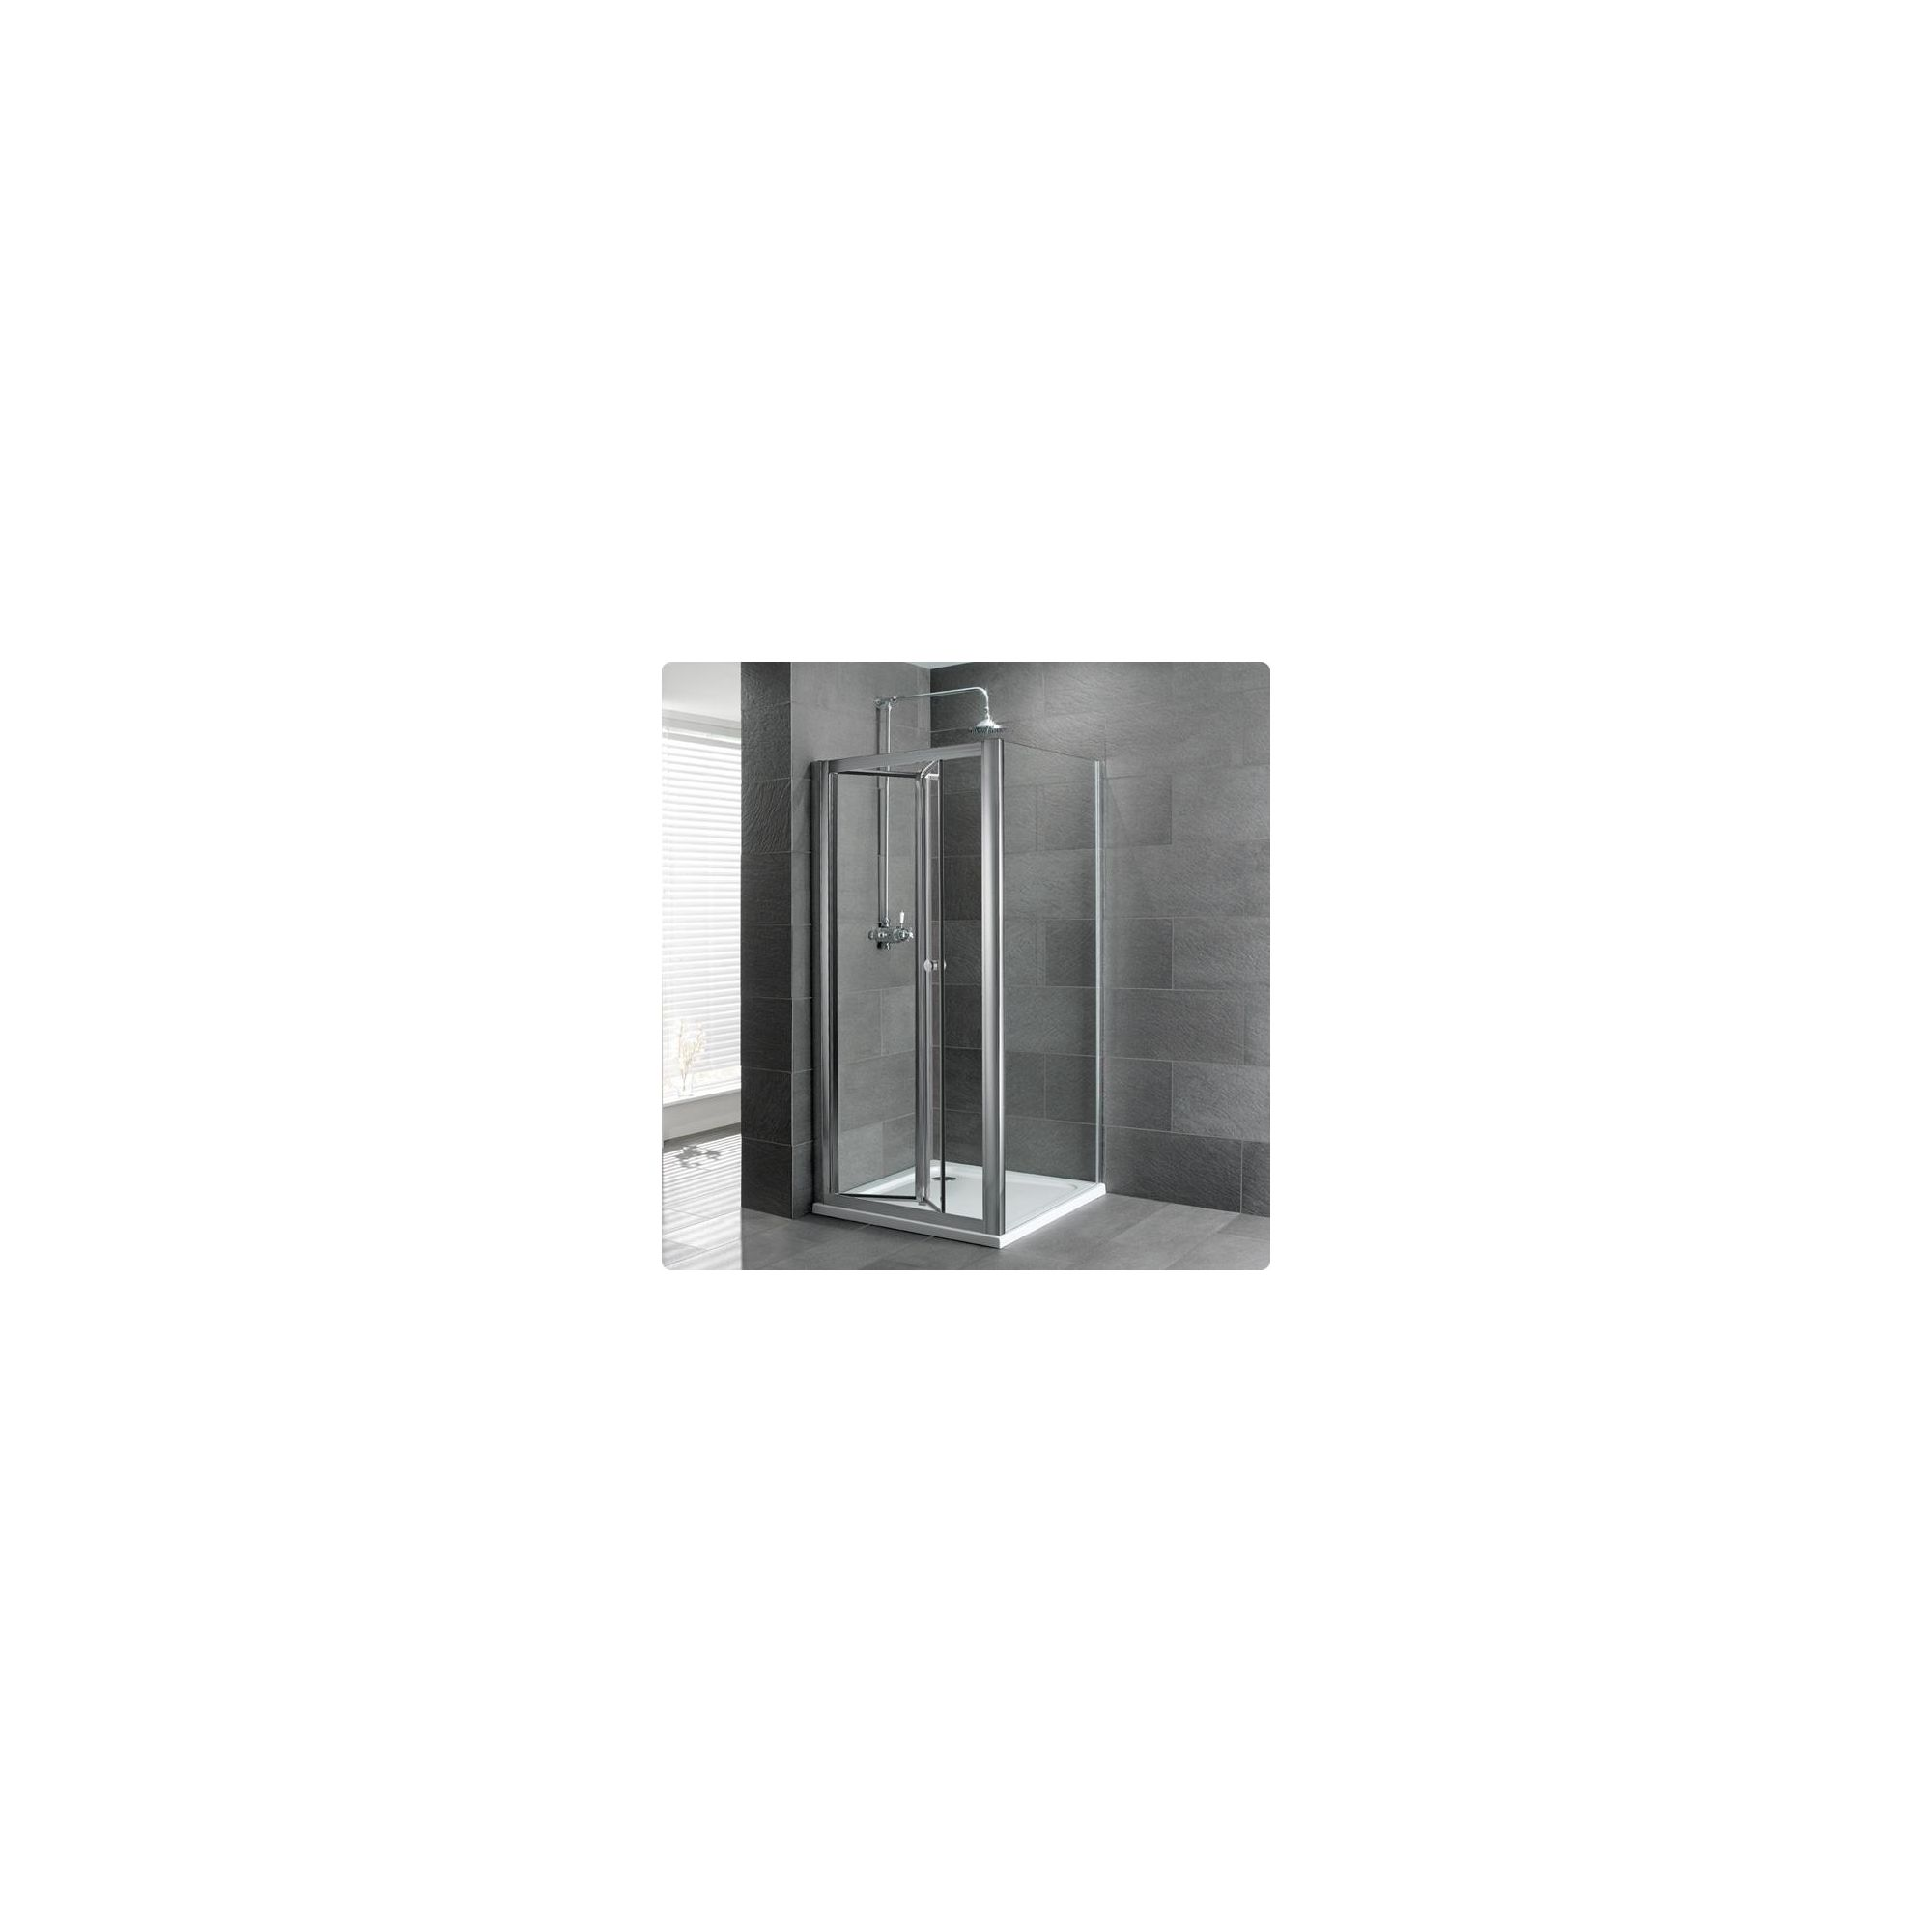 Duchy Select Silver Bi-Fold Door Shower Enclosure, 1000mm x 800mm, Standard Tray, 6mm Glass at Tesco Direct